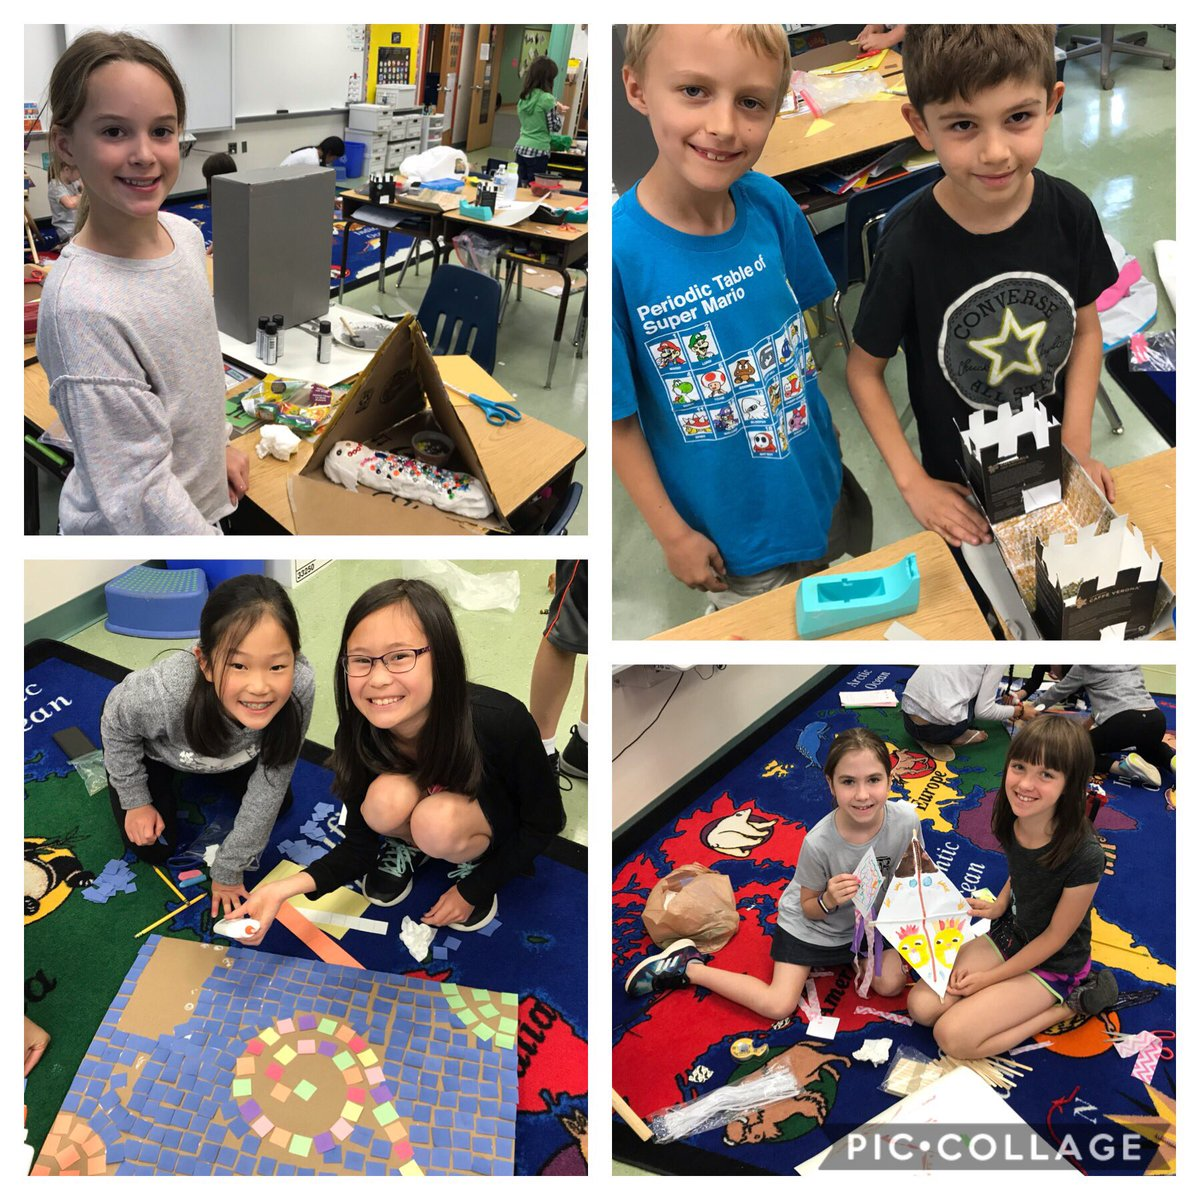 Great ancient civilizations projects underway in third grade! <a target='_blank' href='http://search.twitter.com/search?q=TuckahoeRocks'><a target='_blank' href='https://twitter.com/hashtag/TuckahoeRocks?src=hash'>#TuckahoeRocks</a></a> <a target='_blank' href='https://t.co/7KrTKVIcIZ'>https://t.co/7KrTKVIcIZ</a>